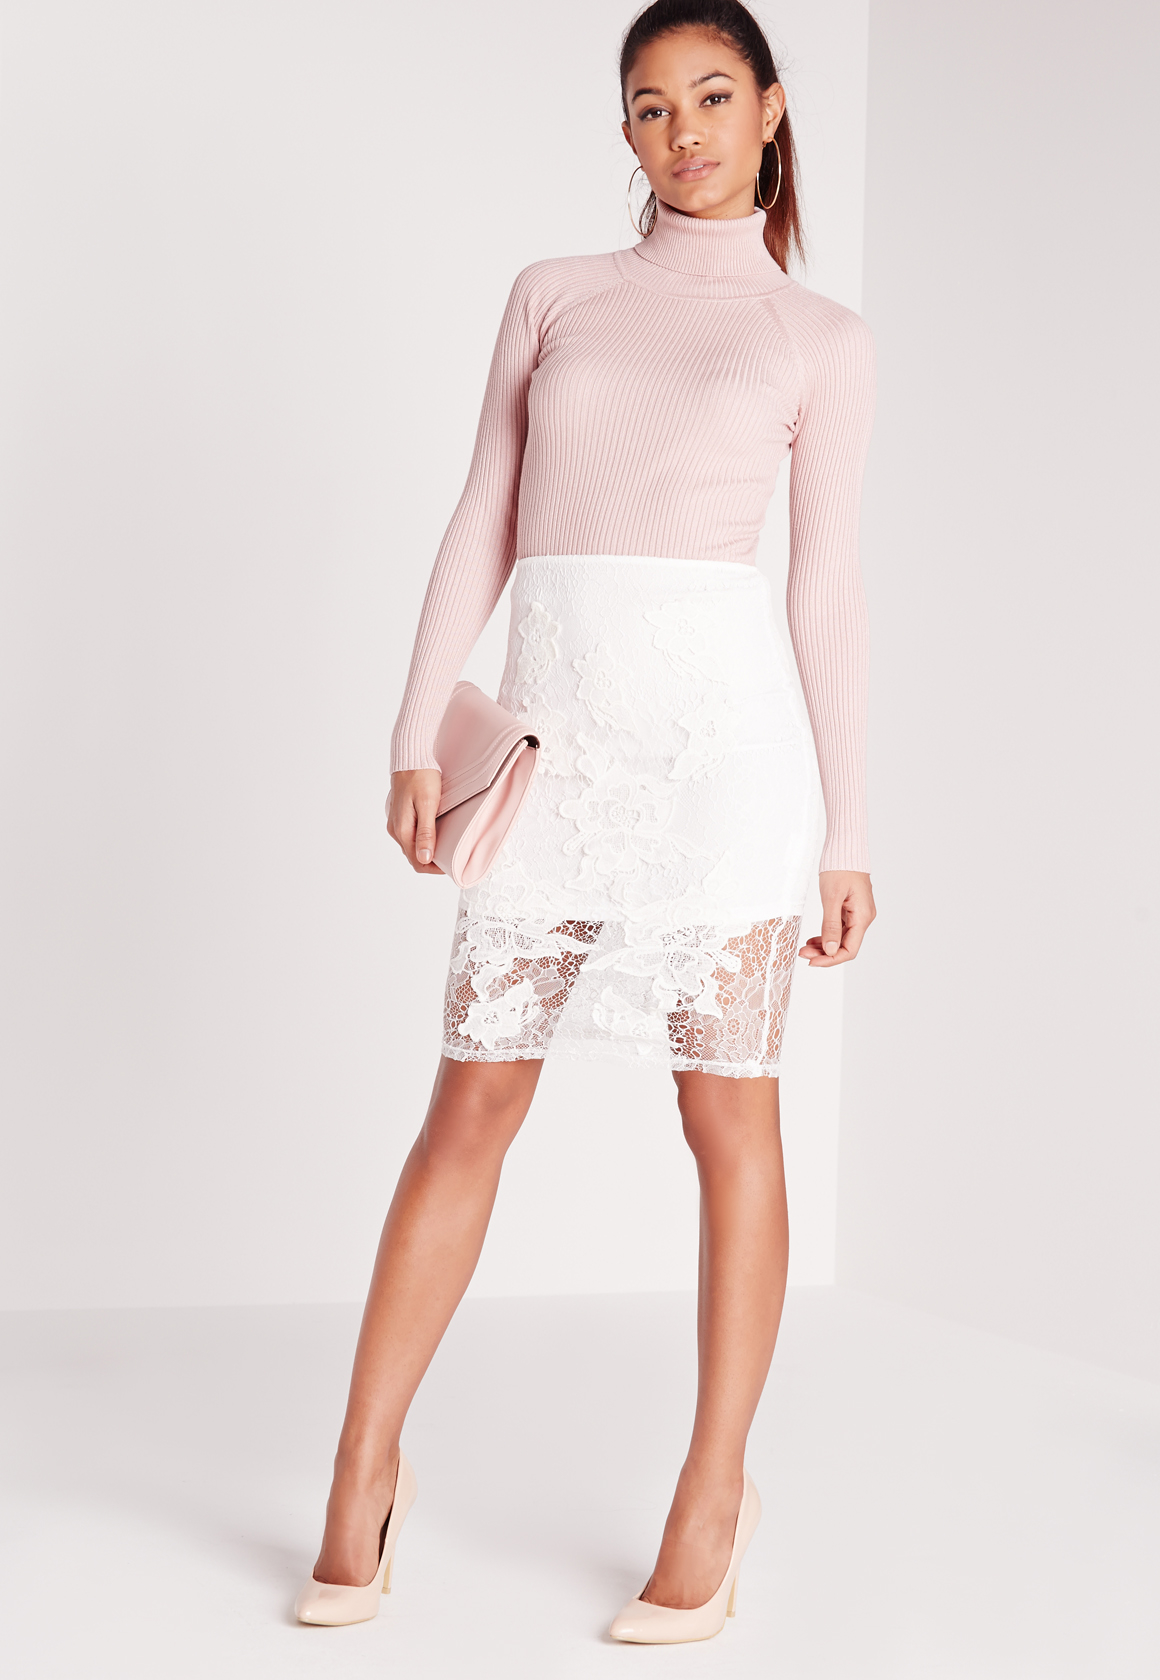 Missguided Lace Floral Midi Skirt White in White | Lyst